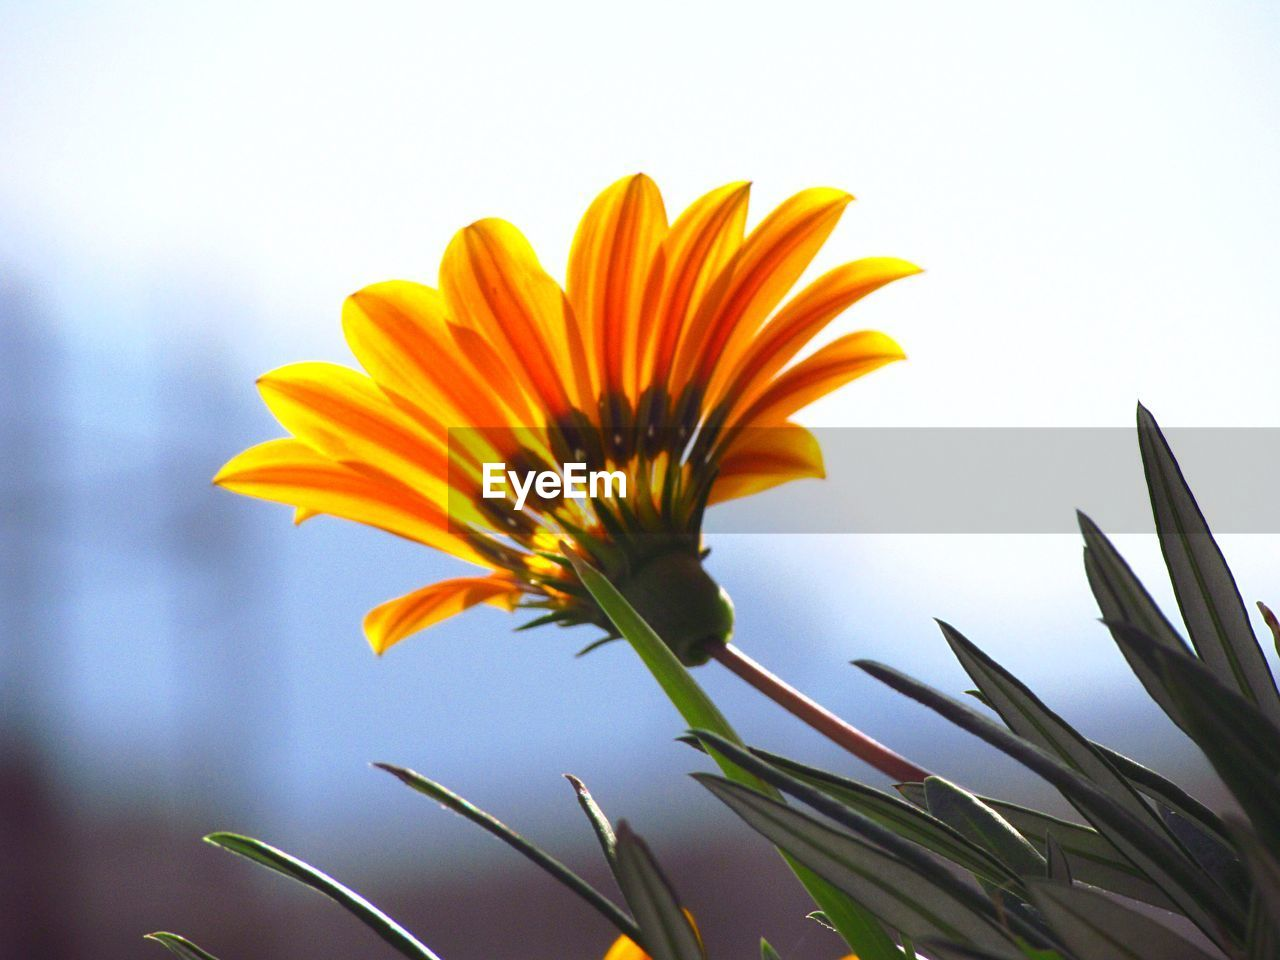 flowering plant, vulnerability, freshness, fragility, plant, growth, flower, petal, yellow, beauty in nature, close-up, flower head, inflorescence, nature, no people, day, focus on foreground, plant stem, orange color, sky, pollen, gazania, sepal